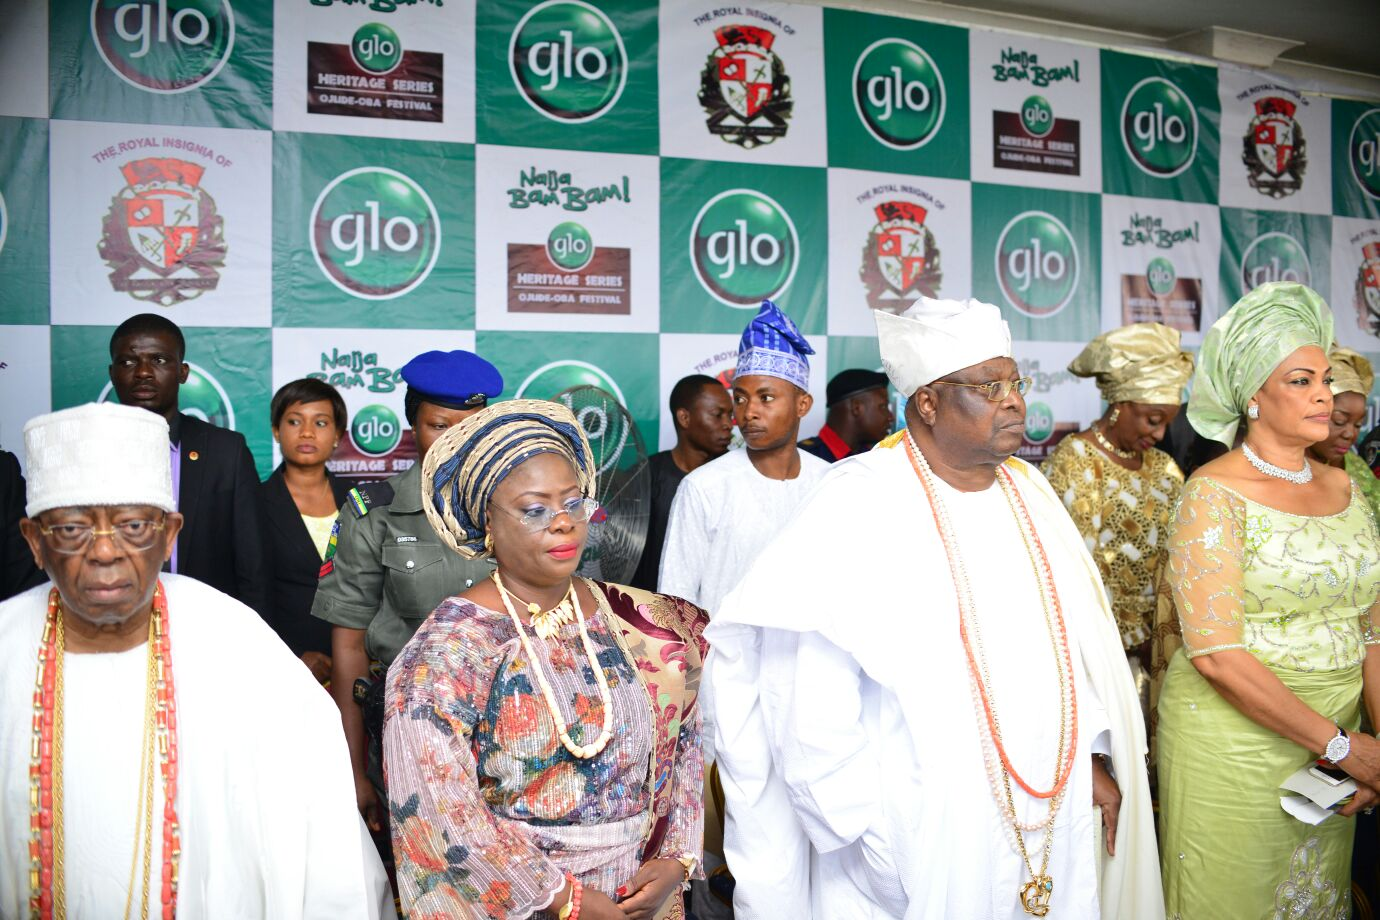 L-R: The Founder of First City Monument Bank (FCMB), Otunba Olasubomi Balogun; the Deputy Governor of Ogun state, Mrs. Yetunde Onanuga; the Awujale of Ijebuland, Oba Sikiru Adetona and Chief (Mrs.) Daisy Danjuma, during the Ojude Oba Festival held at Ijebu Ode in Ogun State on Saturday.